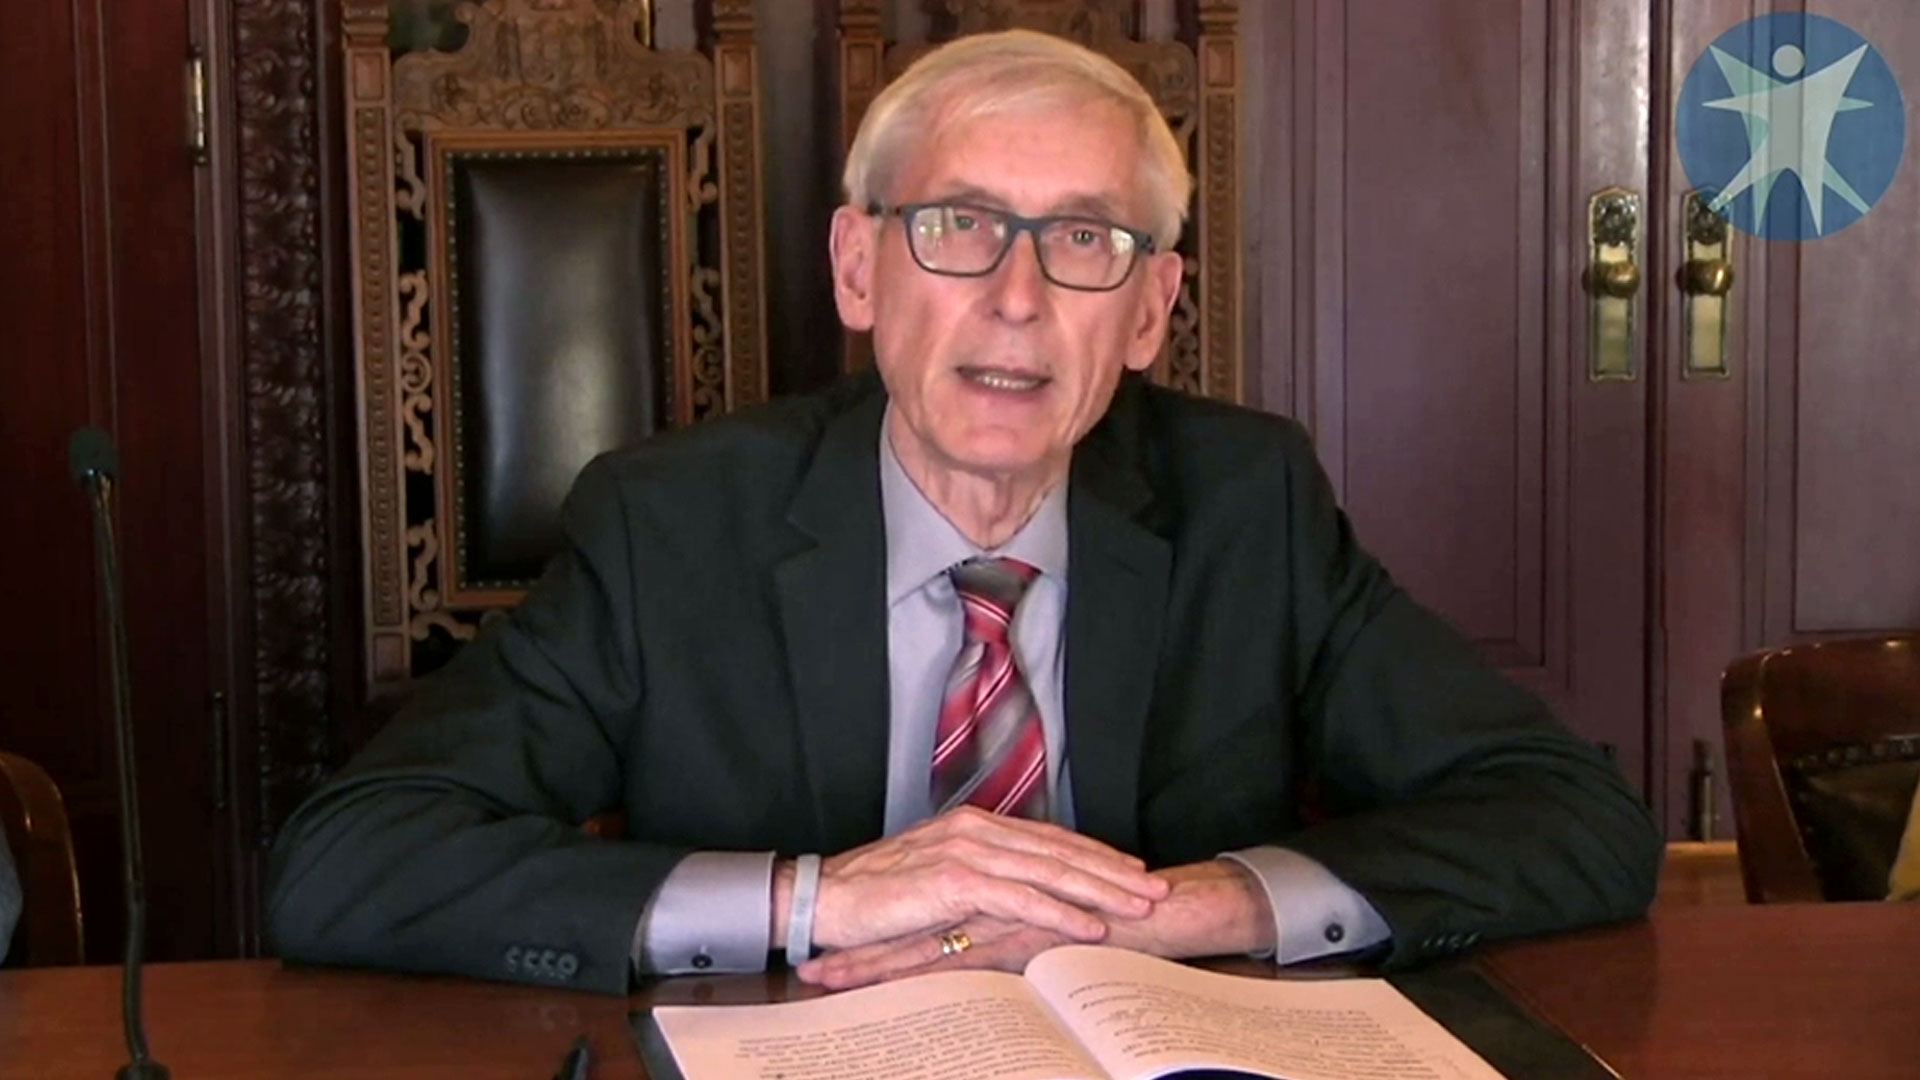 Gov. Tony Evers announces a ban on gatherings of more than 10 people March 17, 2020 amid concerns of the novel coronavirus spreading. (Courtesy: Dept. of Health Services)